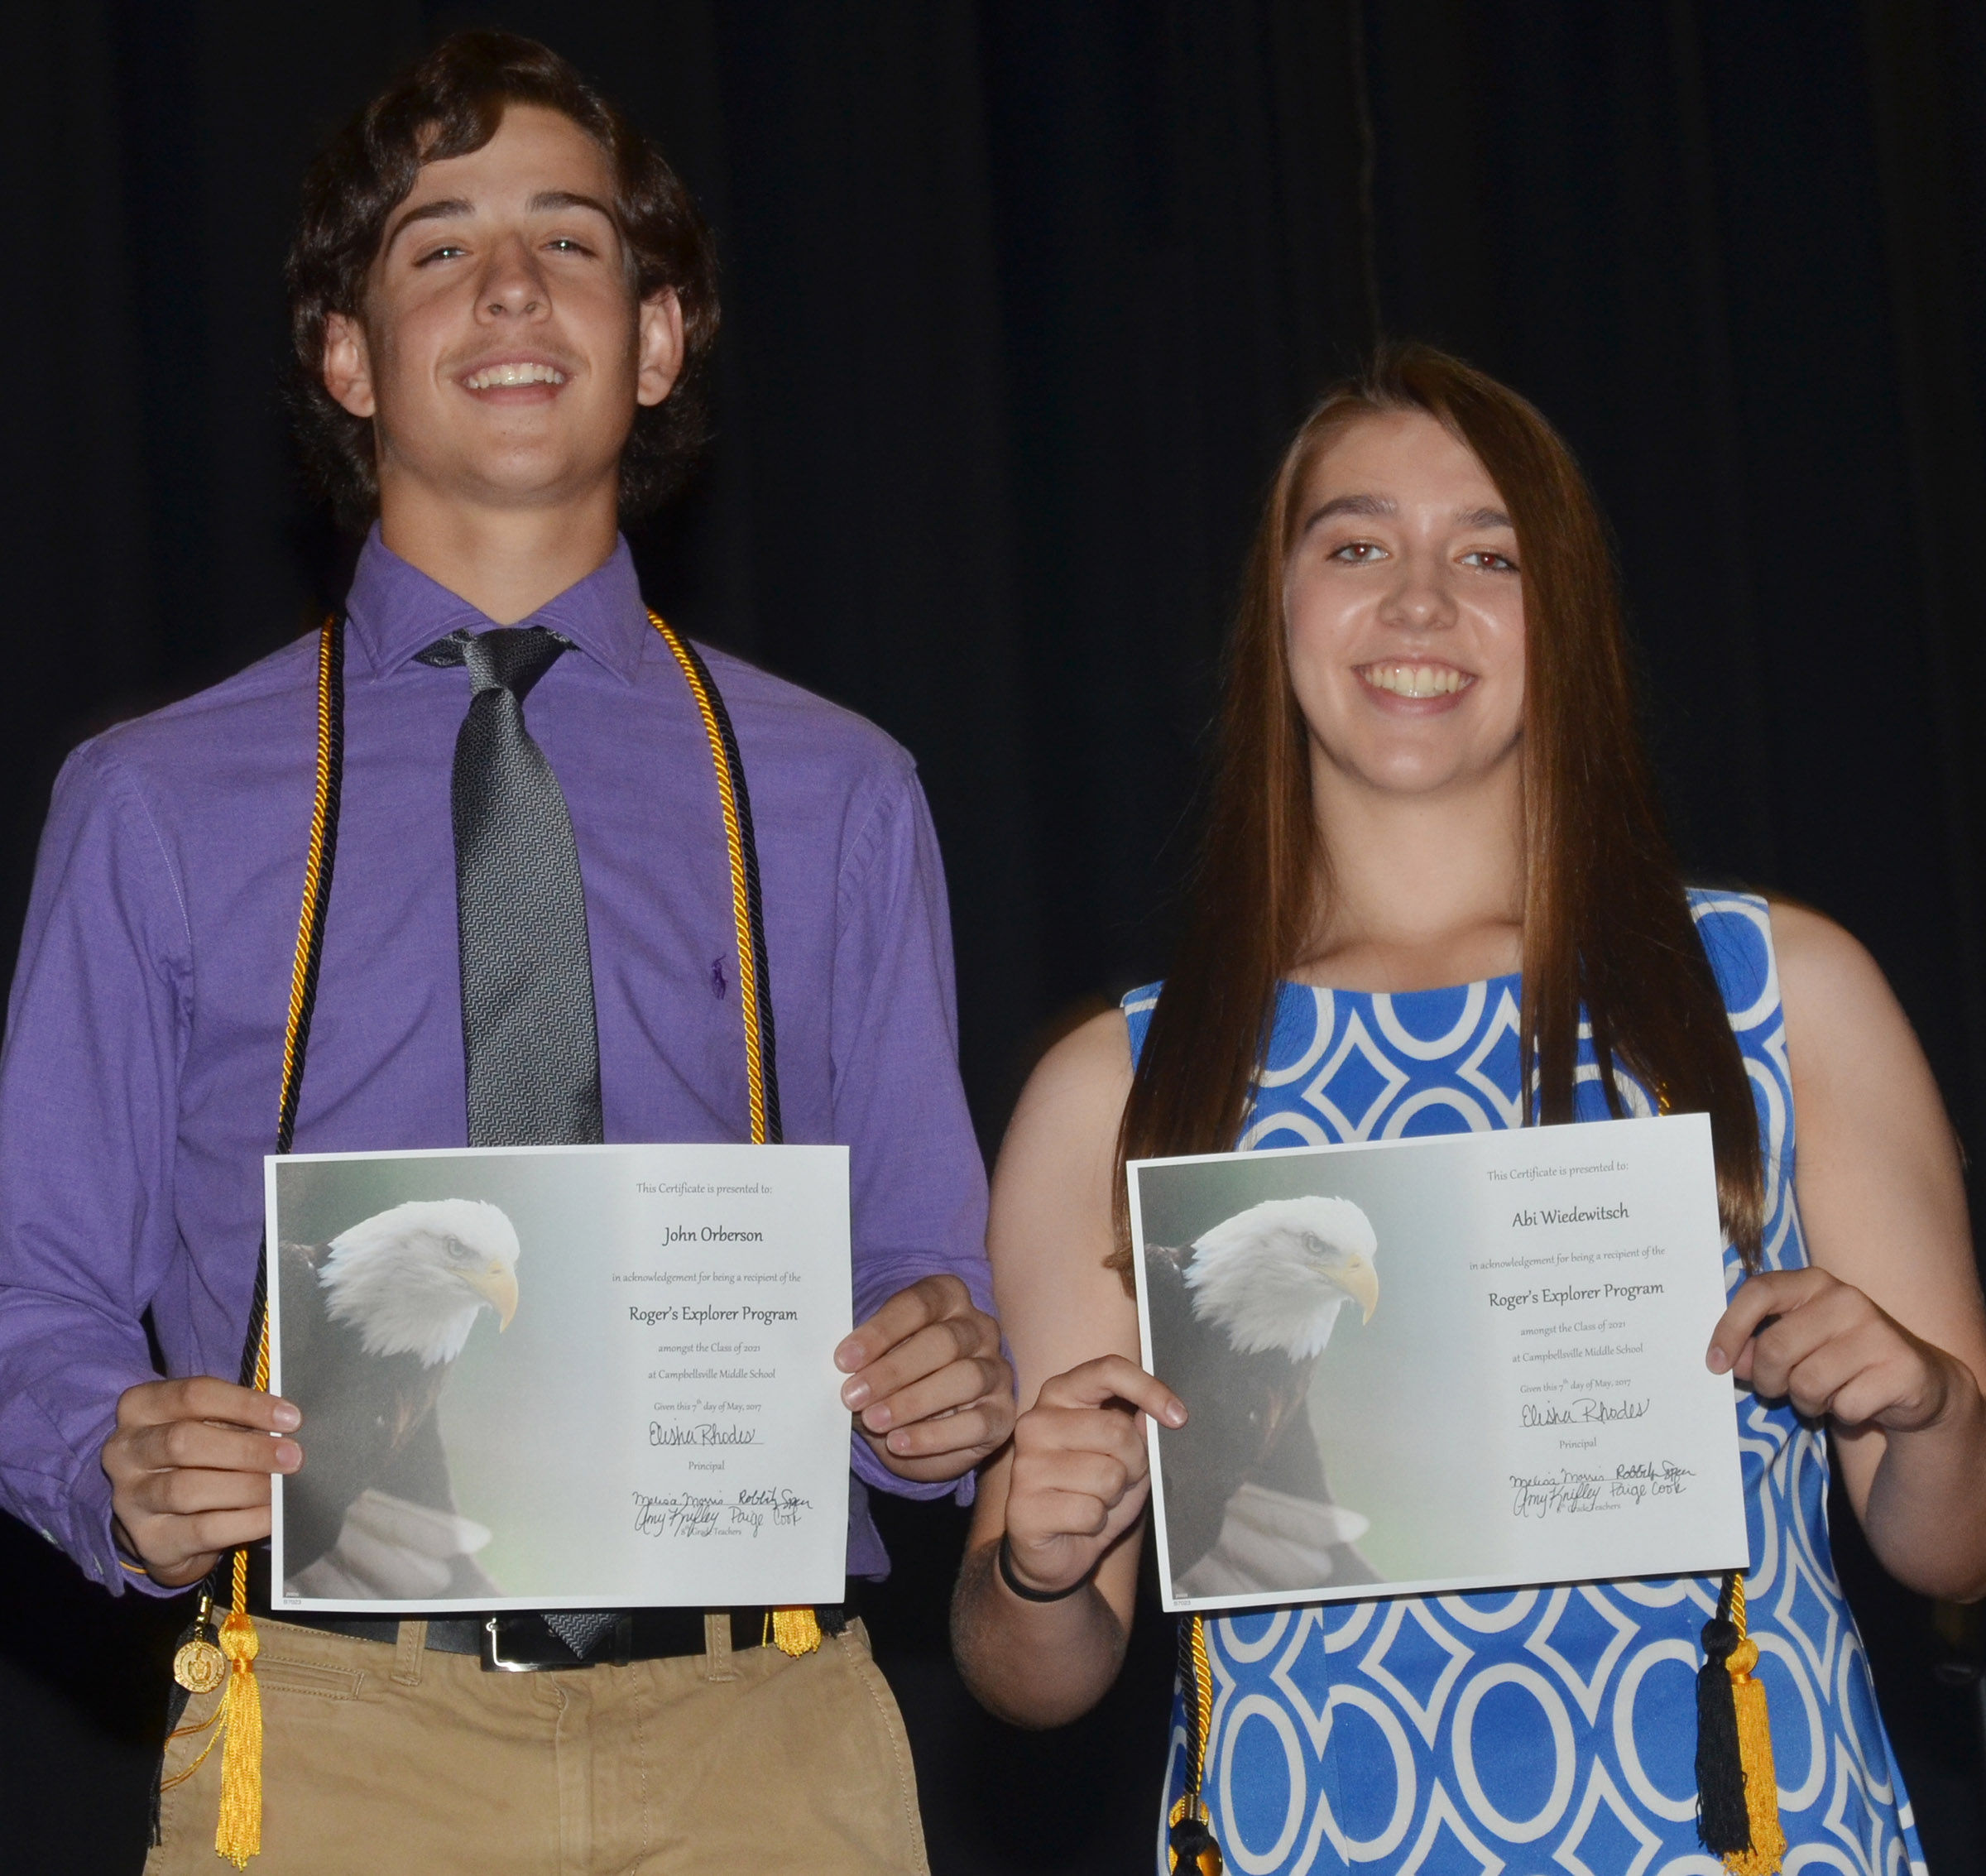 CMS eighth-graders John Orberson and Abi Wiedewitsch are honored for being chosen to attend the Rogers Explorer program this summer.